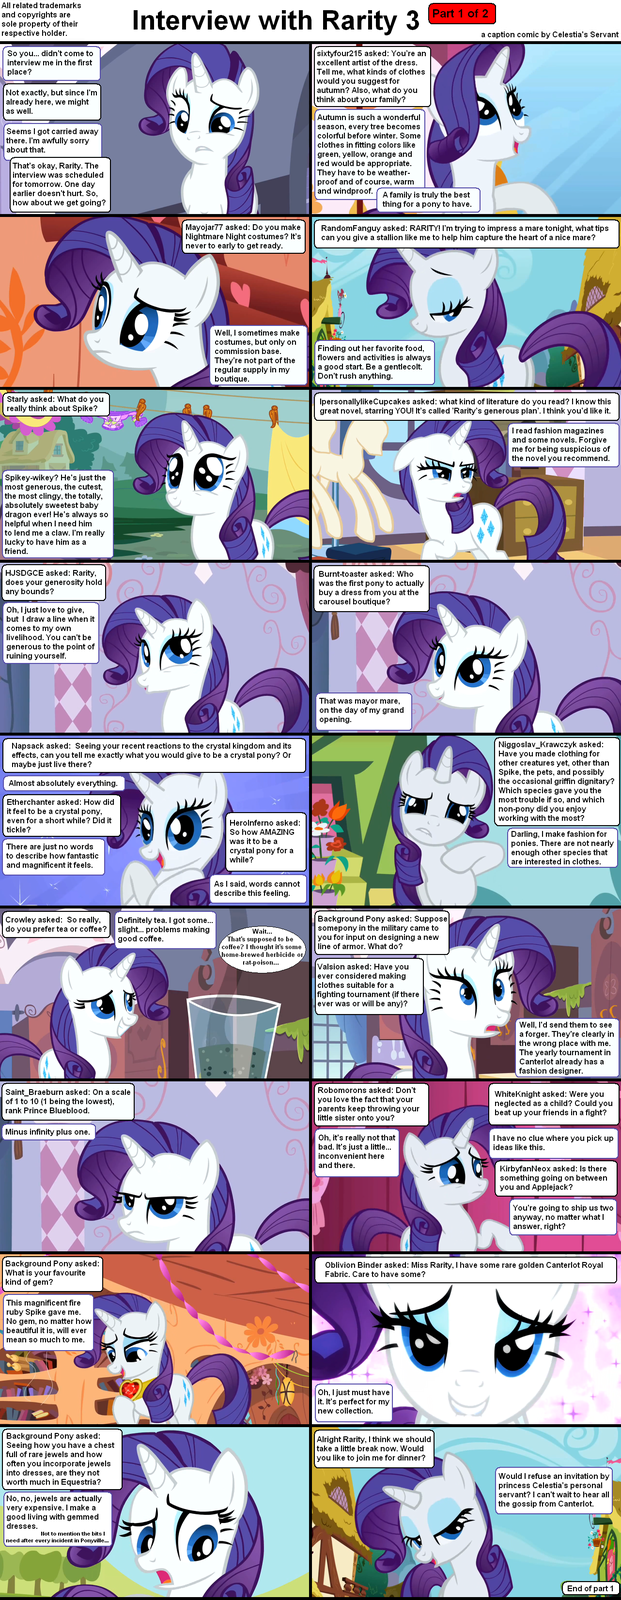 Interview with Rarity 3